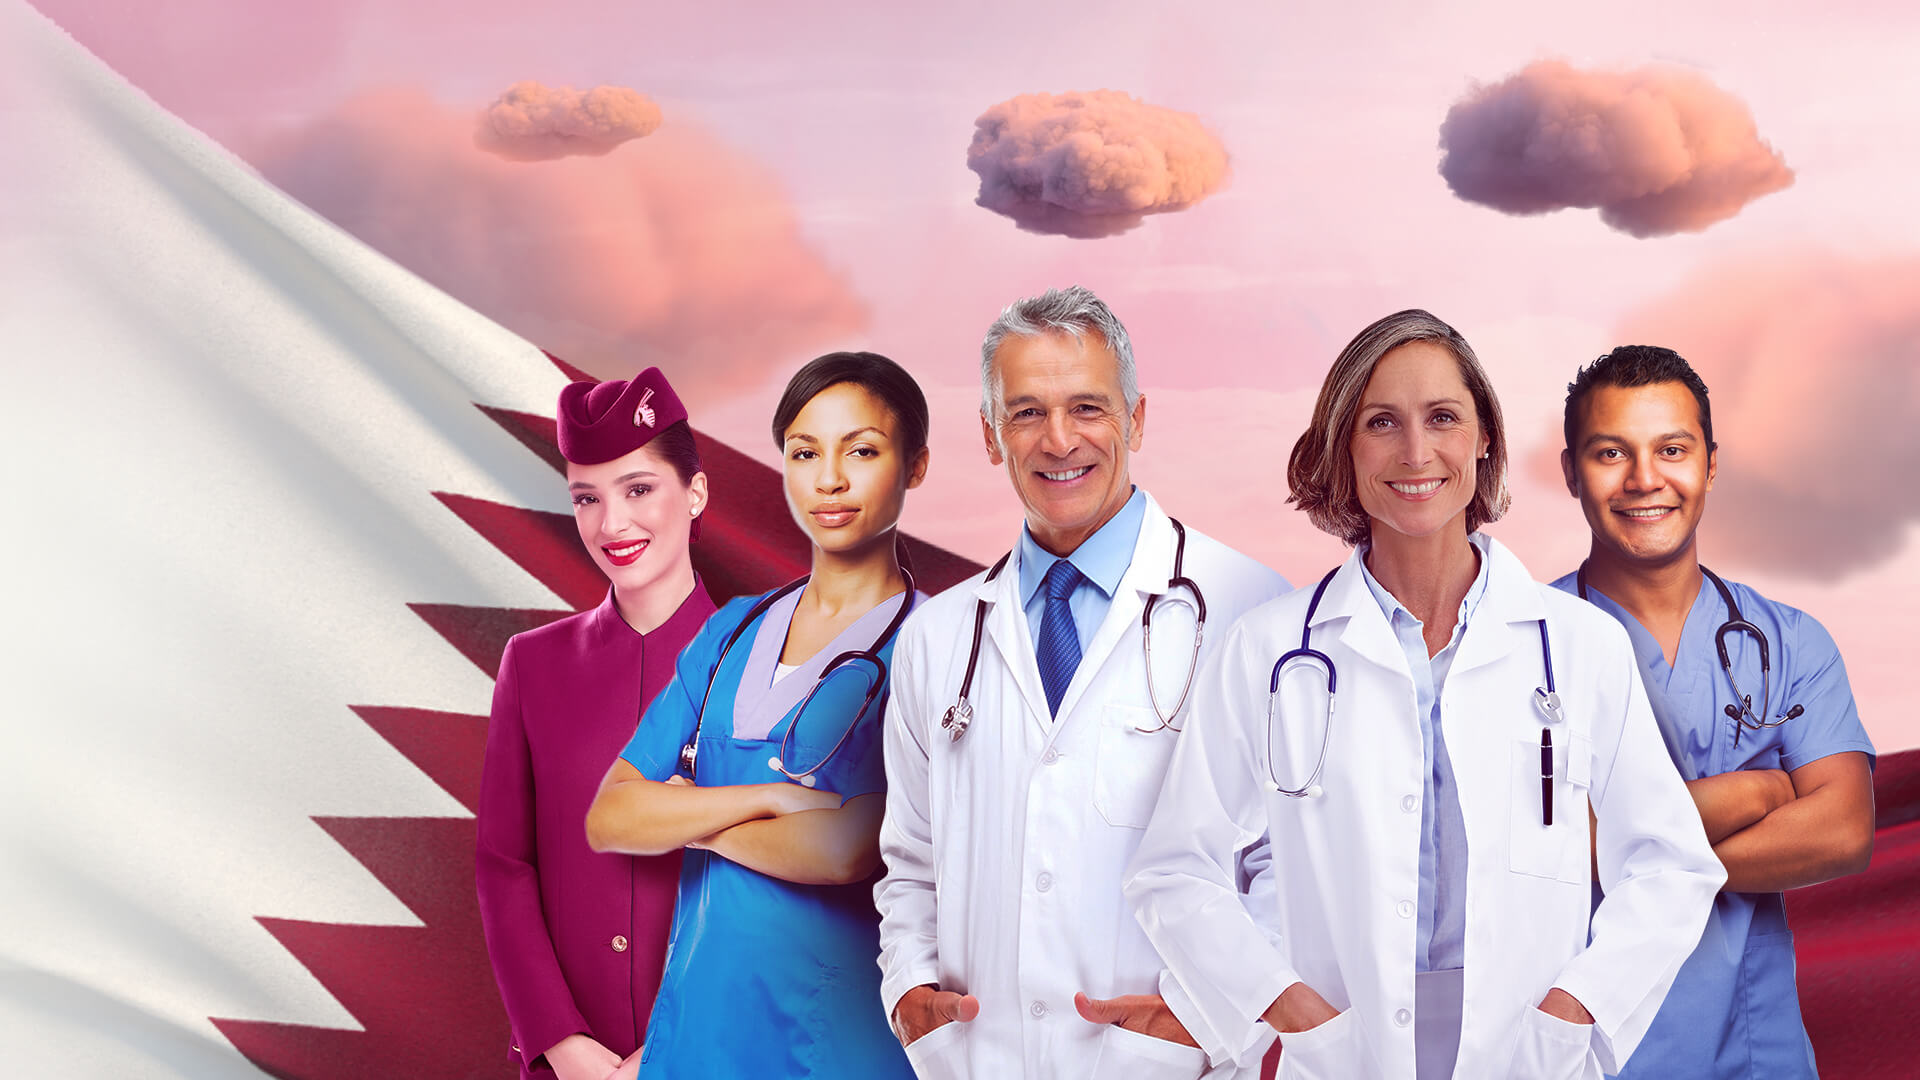 1,00,000 Free Tickets for Healthcare Workers From Qatar Airways